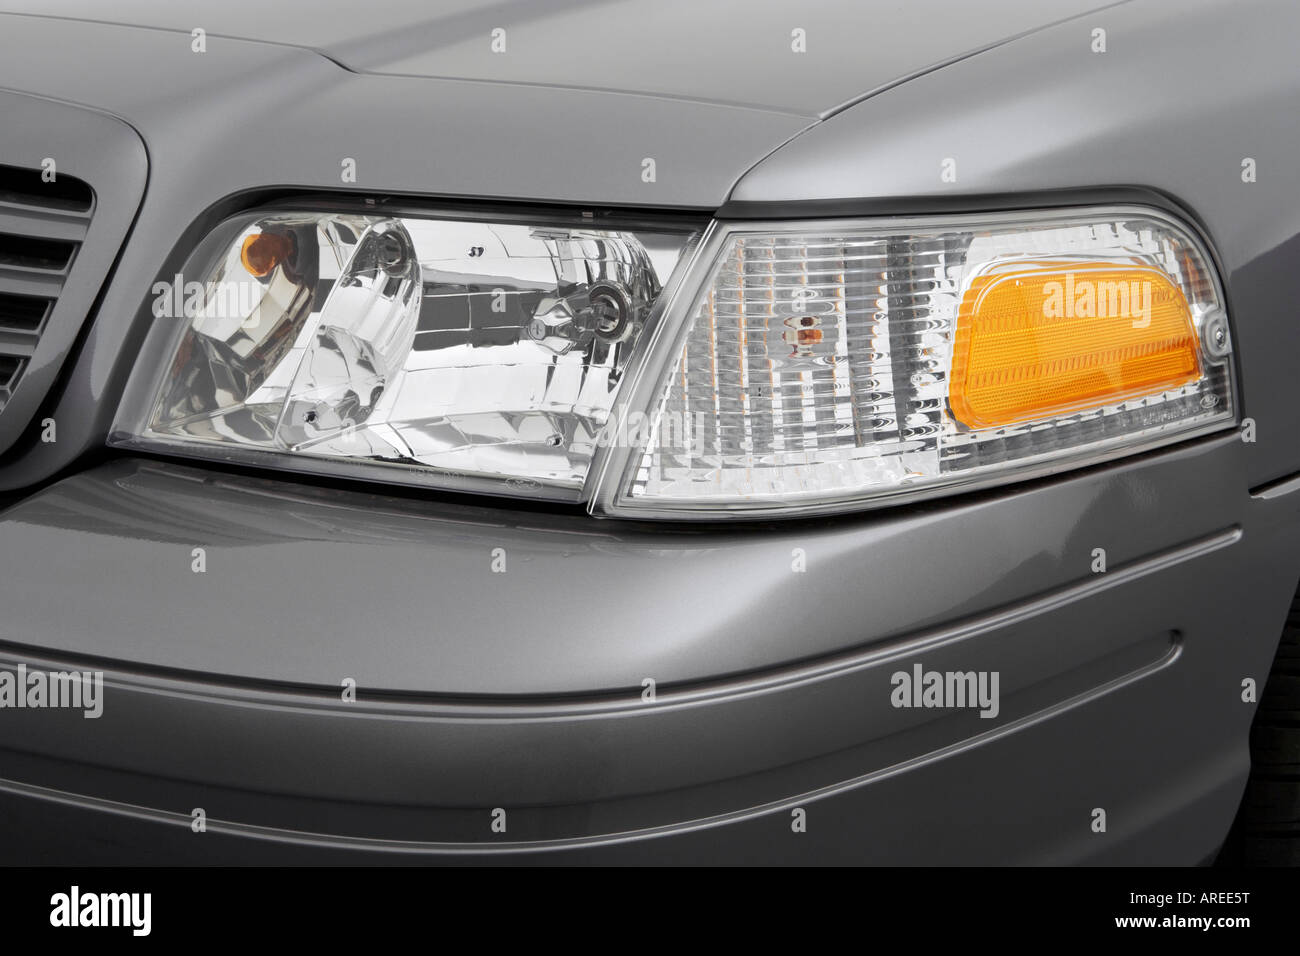 hight resolution of 2006 ford crown victoria lx sport in gray headlight stock image